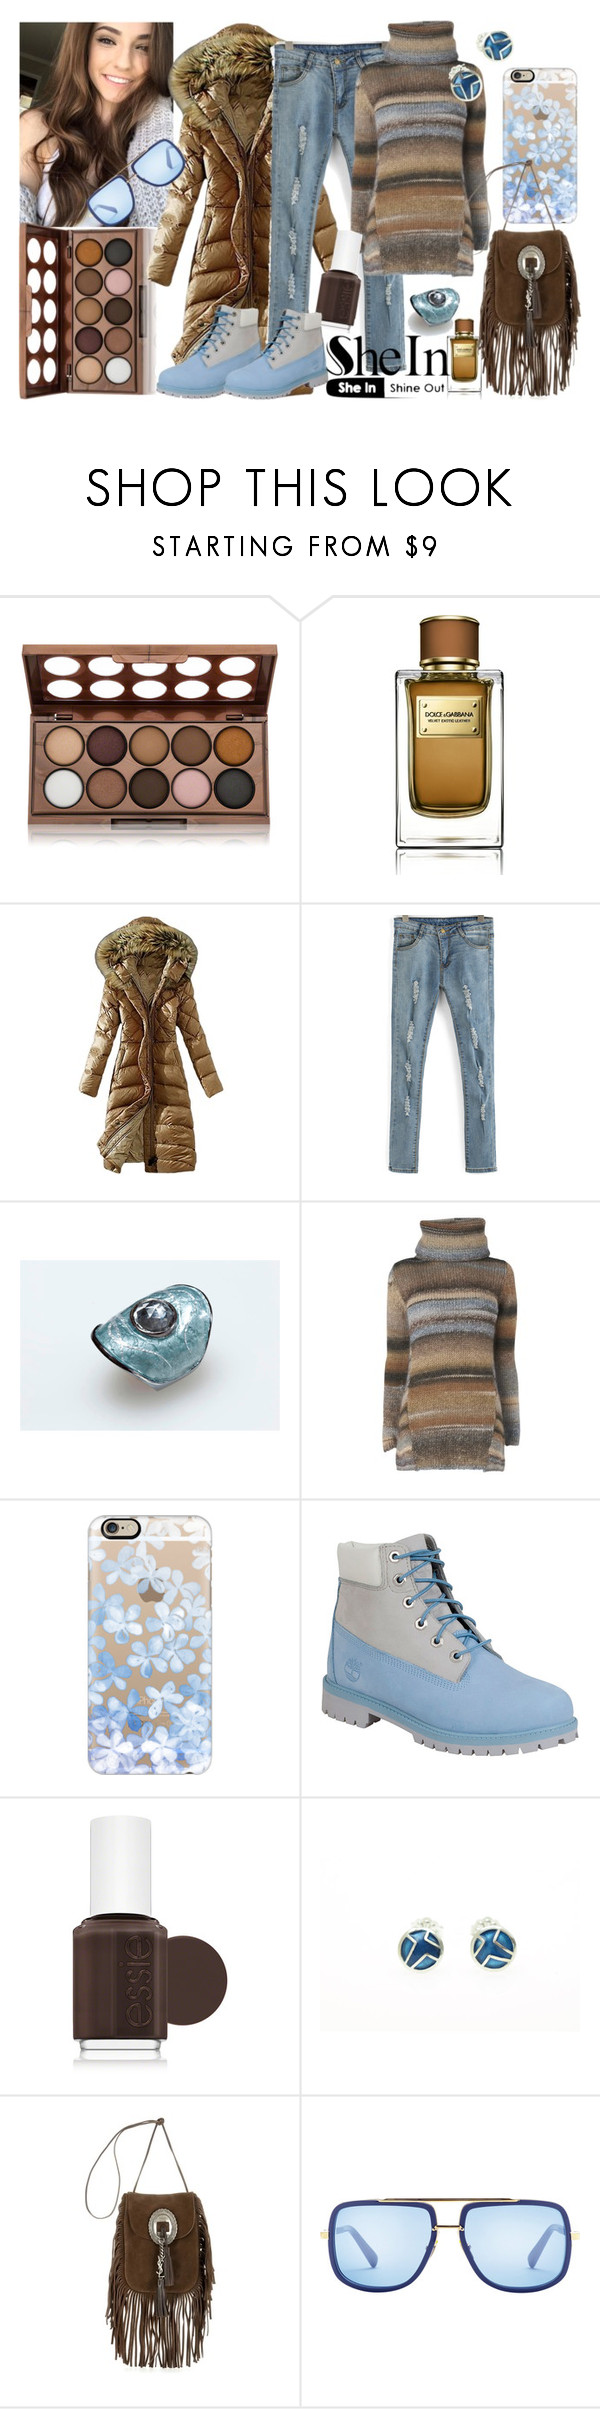 """""""Girls in the snow"""" by giampourasjewel ❤ liked on Polyvore featuring NYX, Dolce&Gabbana, Phase Eight, Casetify, Timberland, Essie, Yves Saint Laurent, women's clothing, women's fashion and women"""